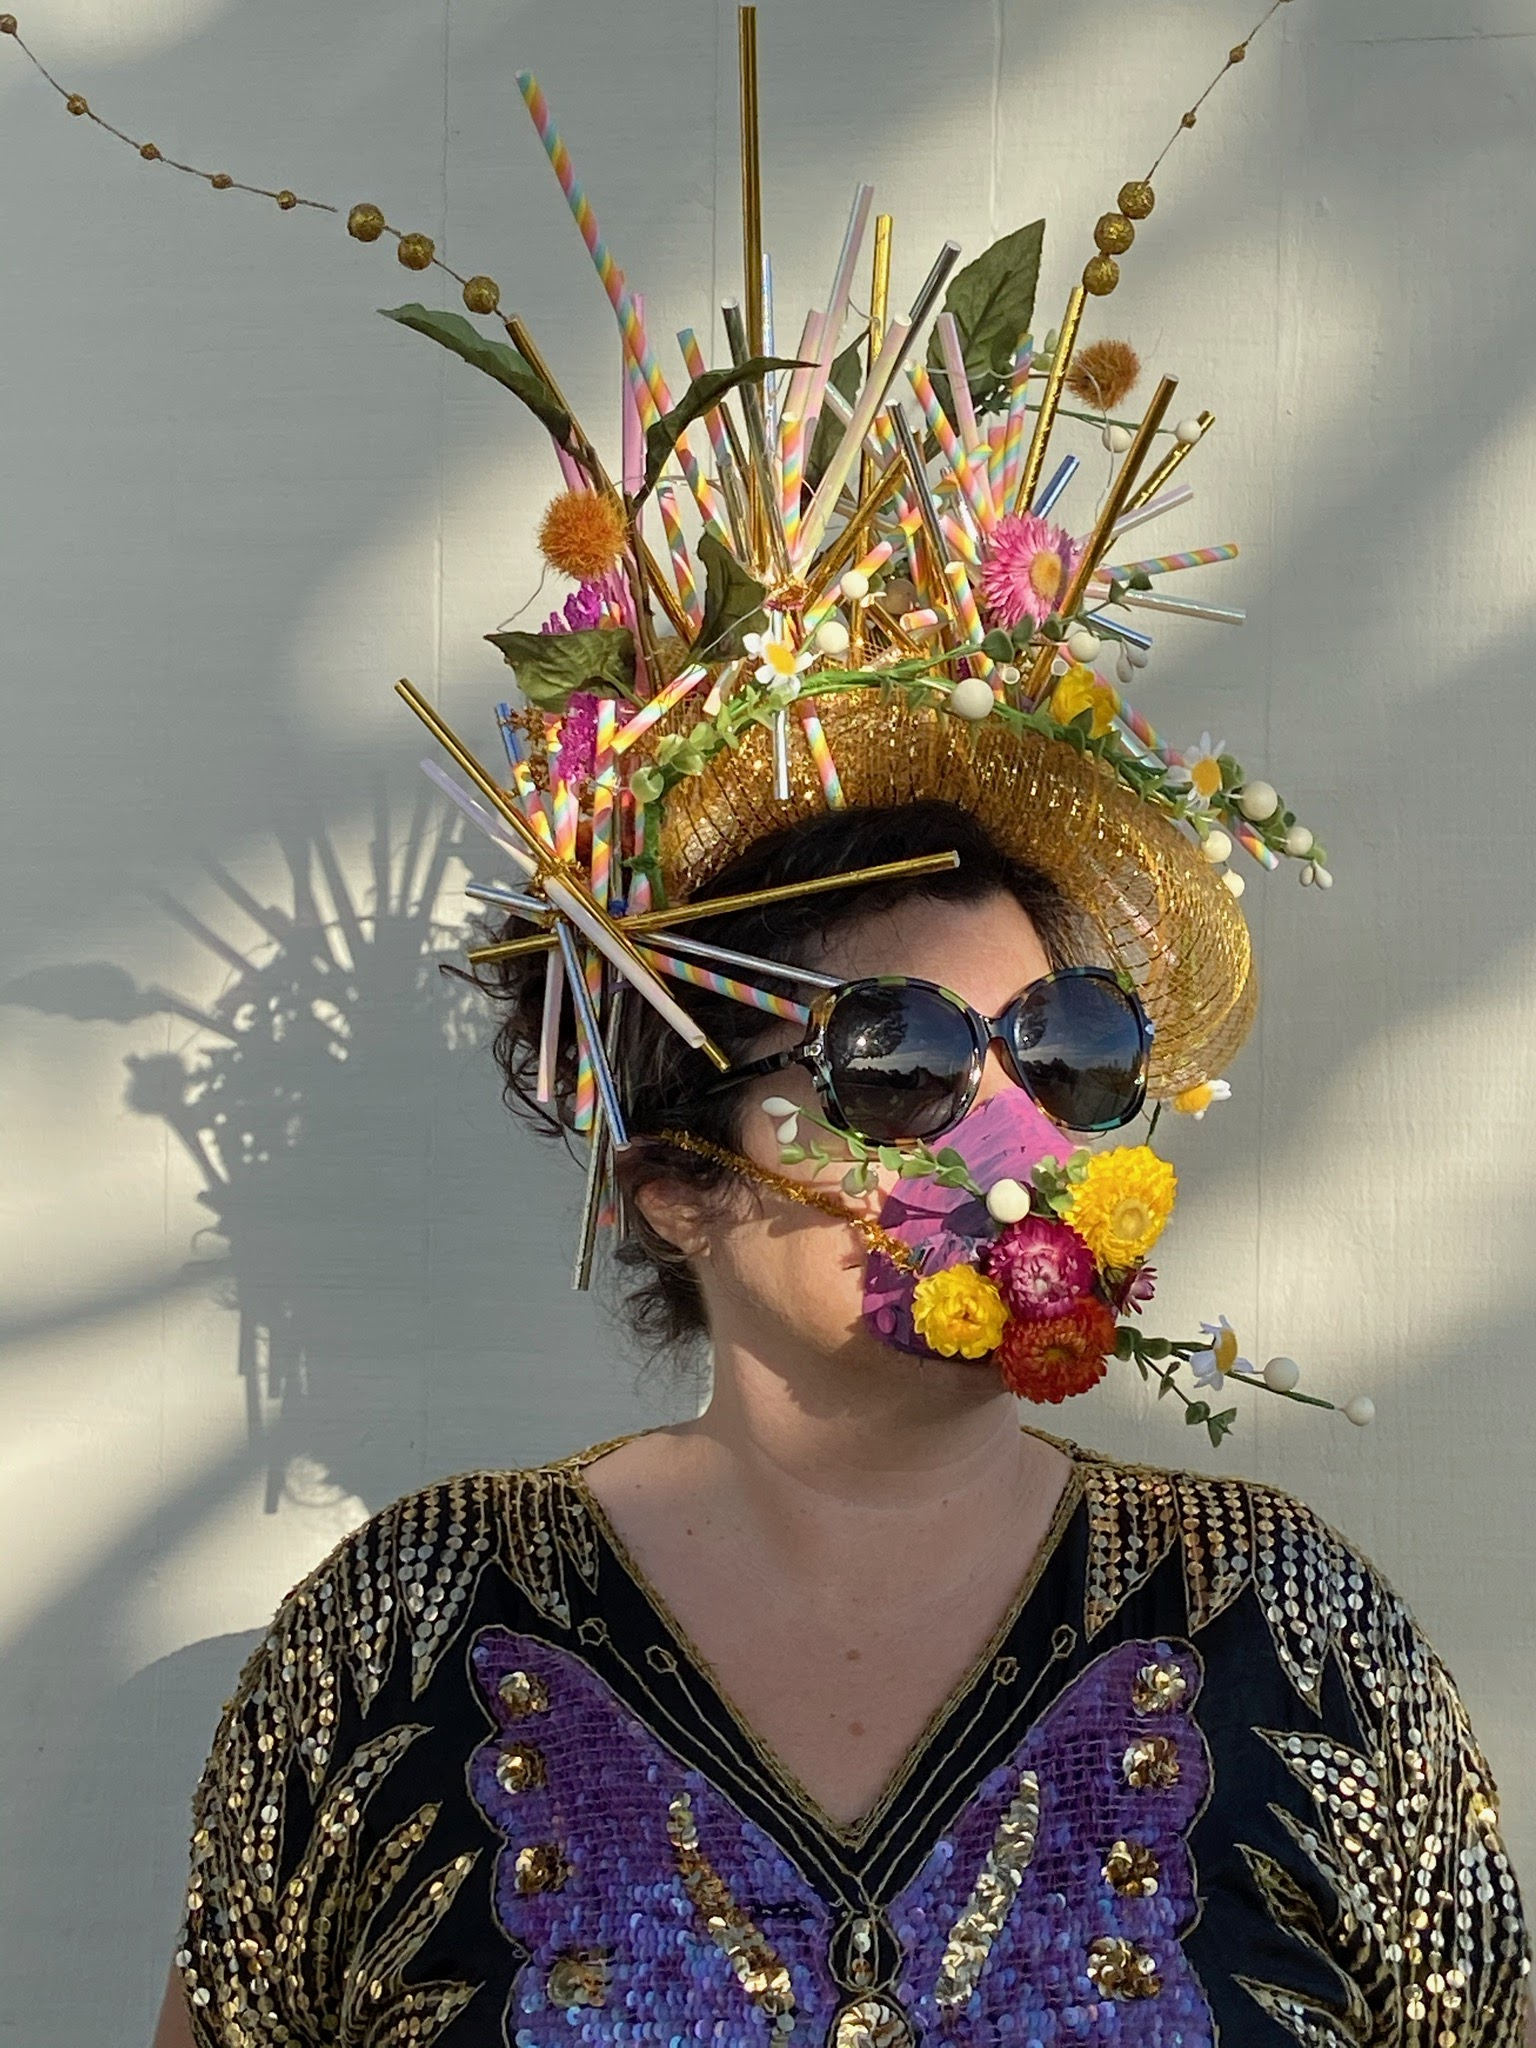 A woman wears a handmade crown made from flowers, and a mask that matches.